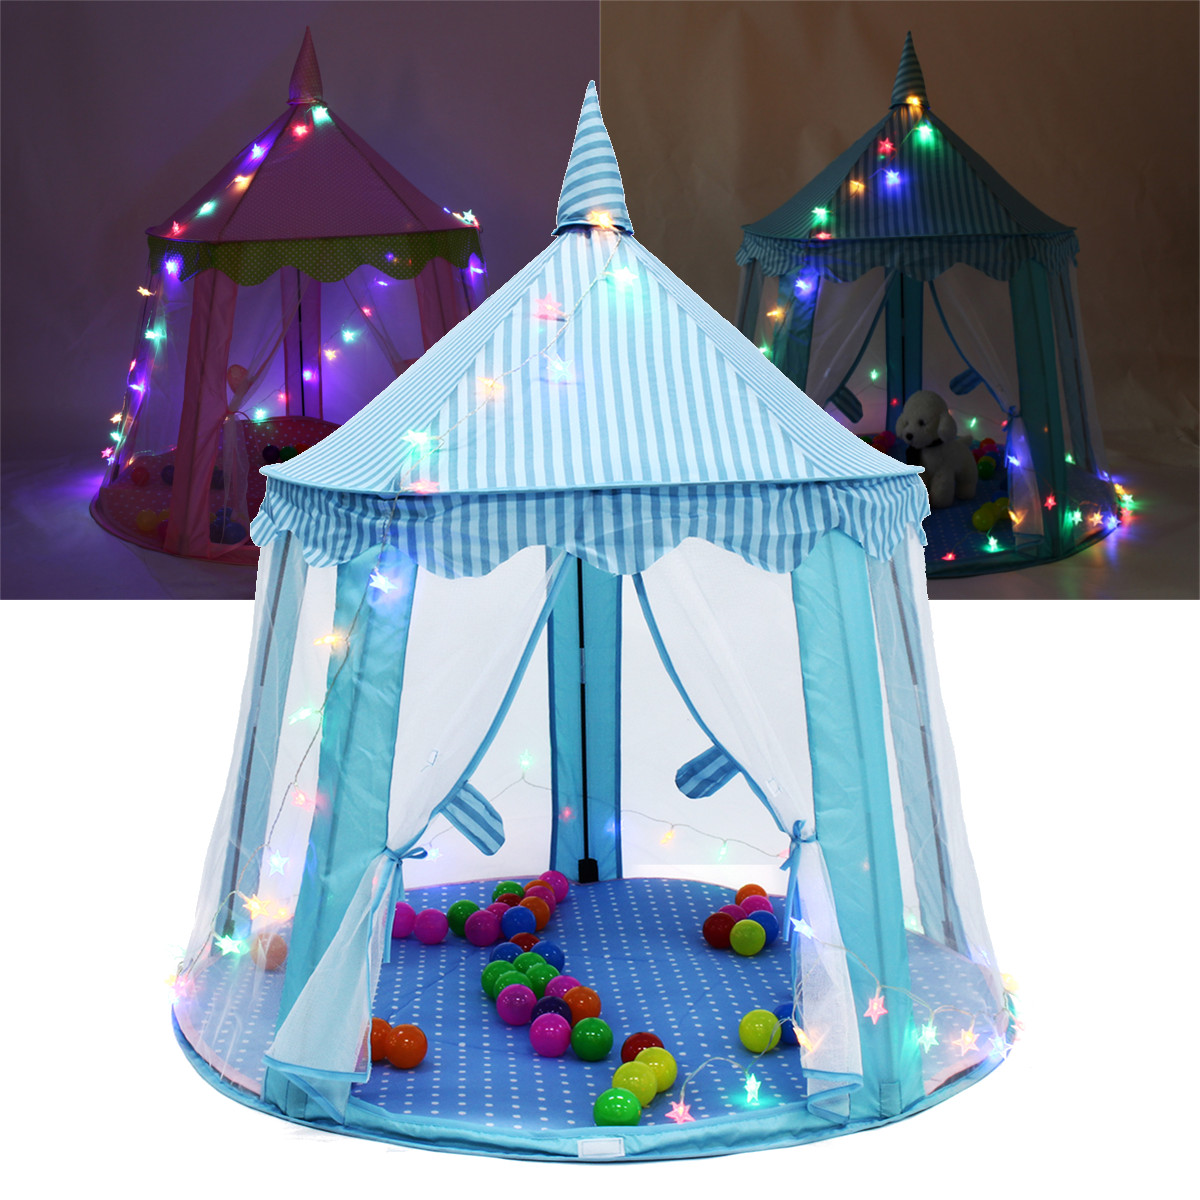 Star LED String Lights Play House Girls Large Indoor/Outdoor